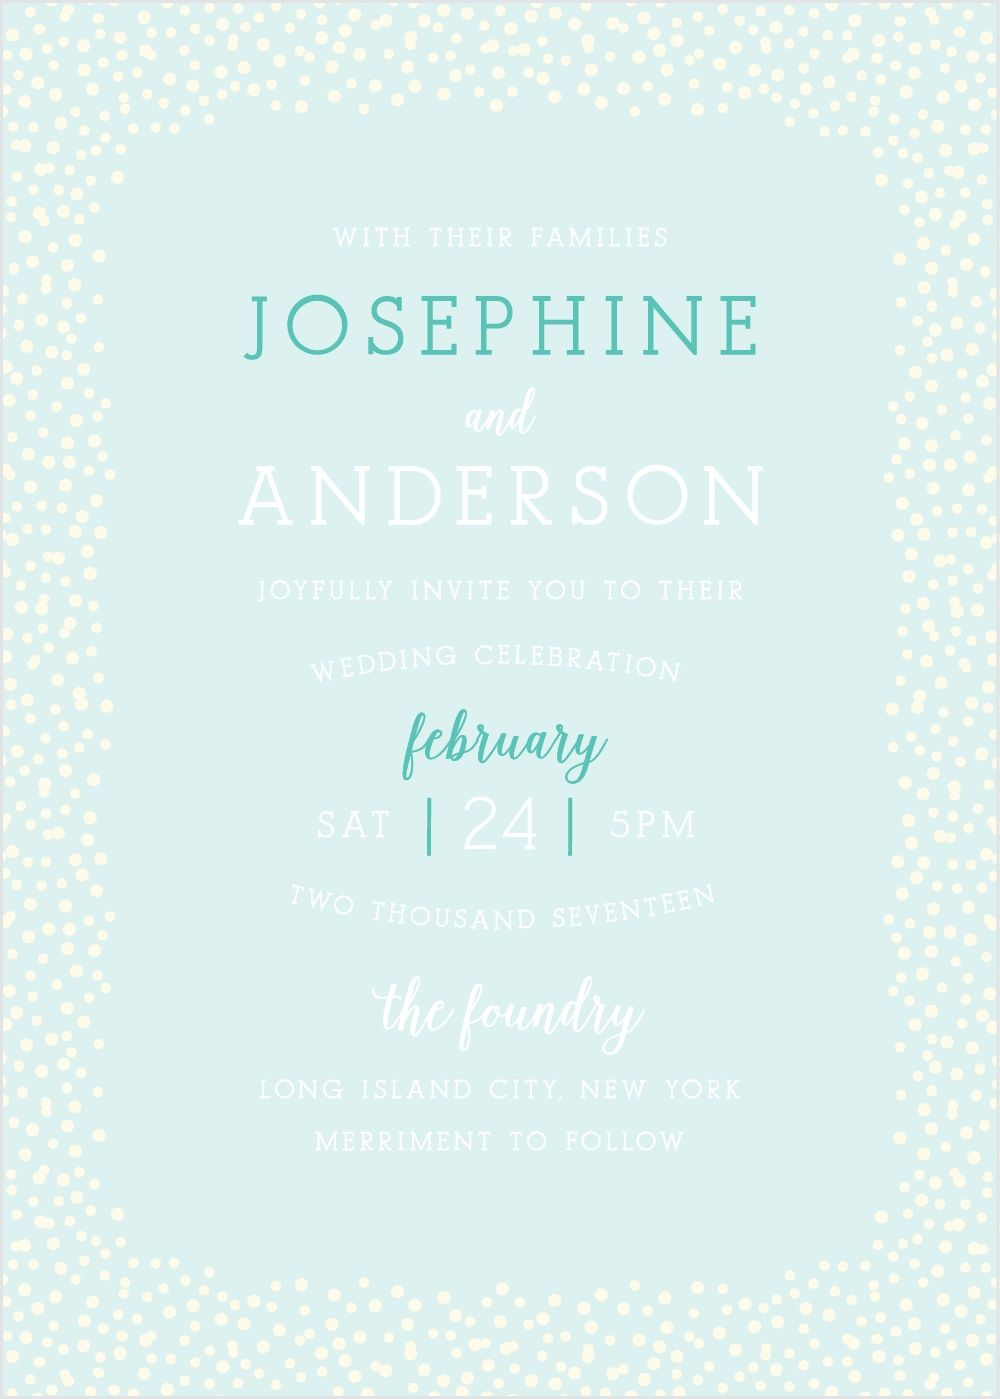 Pin by Andrea Cernaz on Wedding | Pinterest | Confetti, Invitation ...